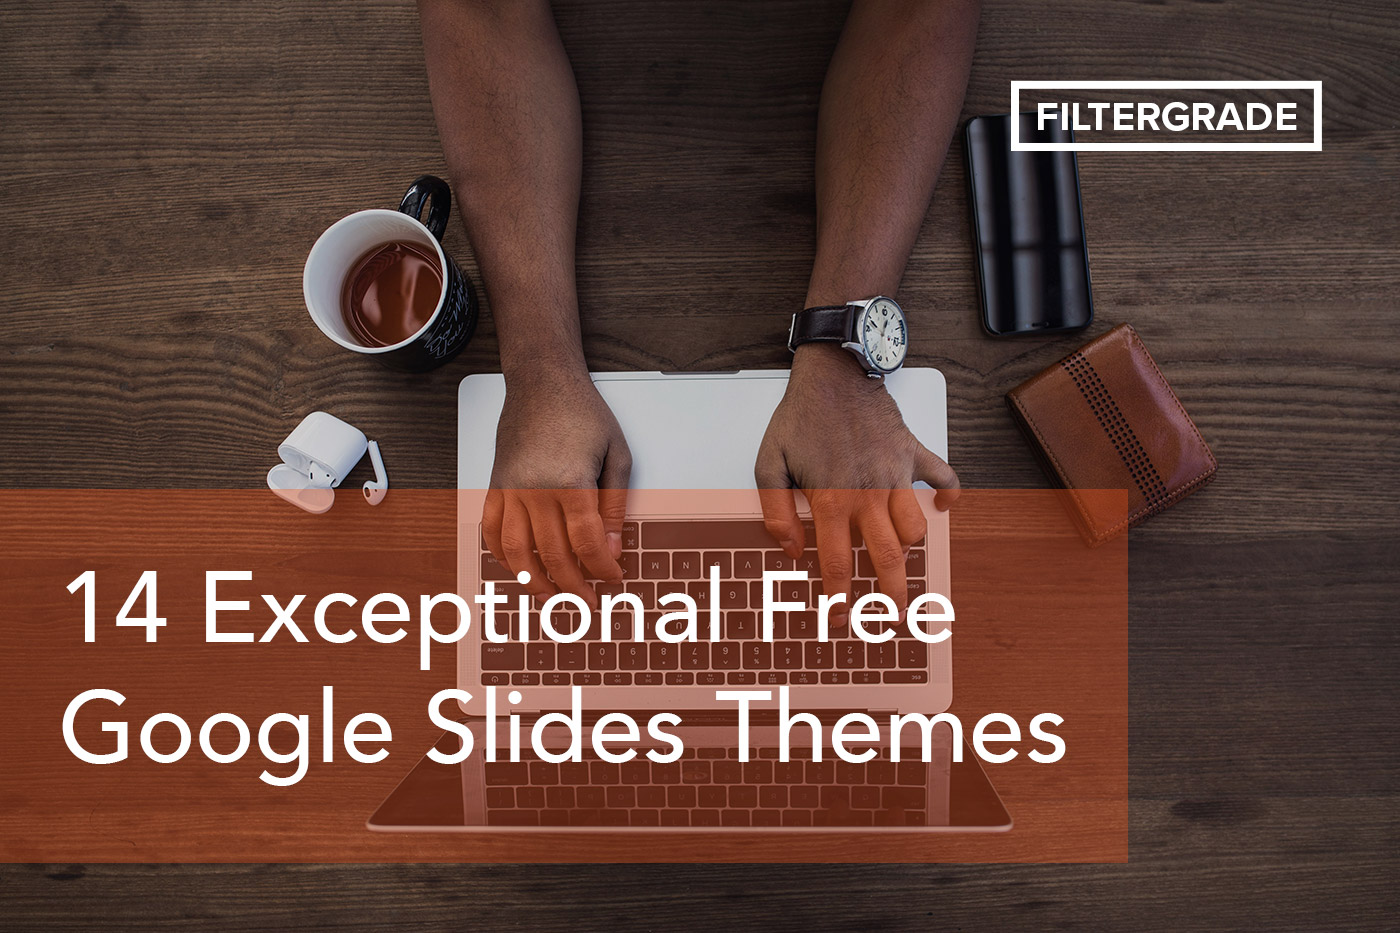 14 Exceptional Free Google Slides Themes